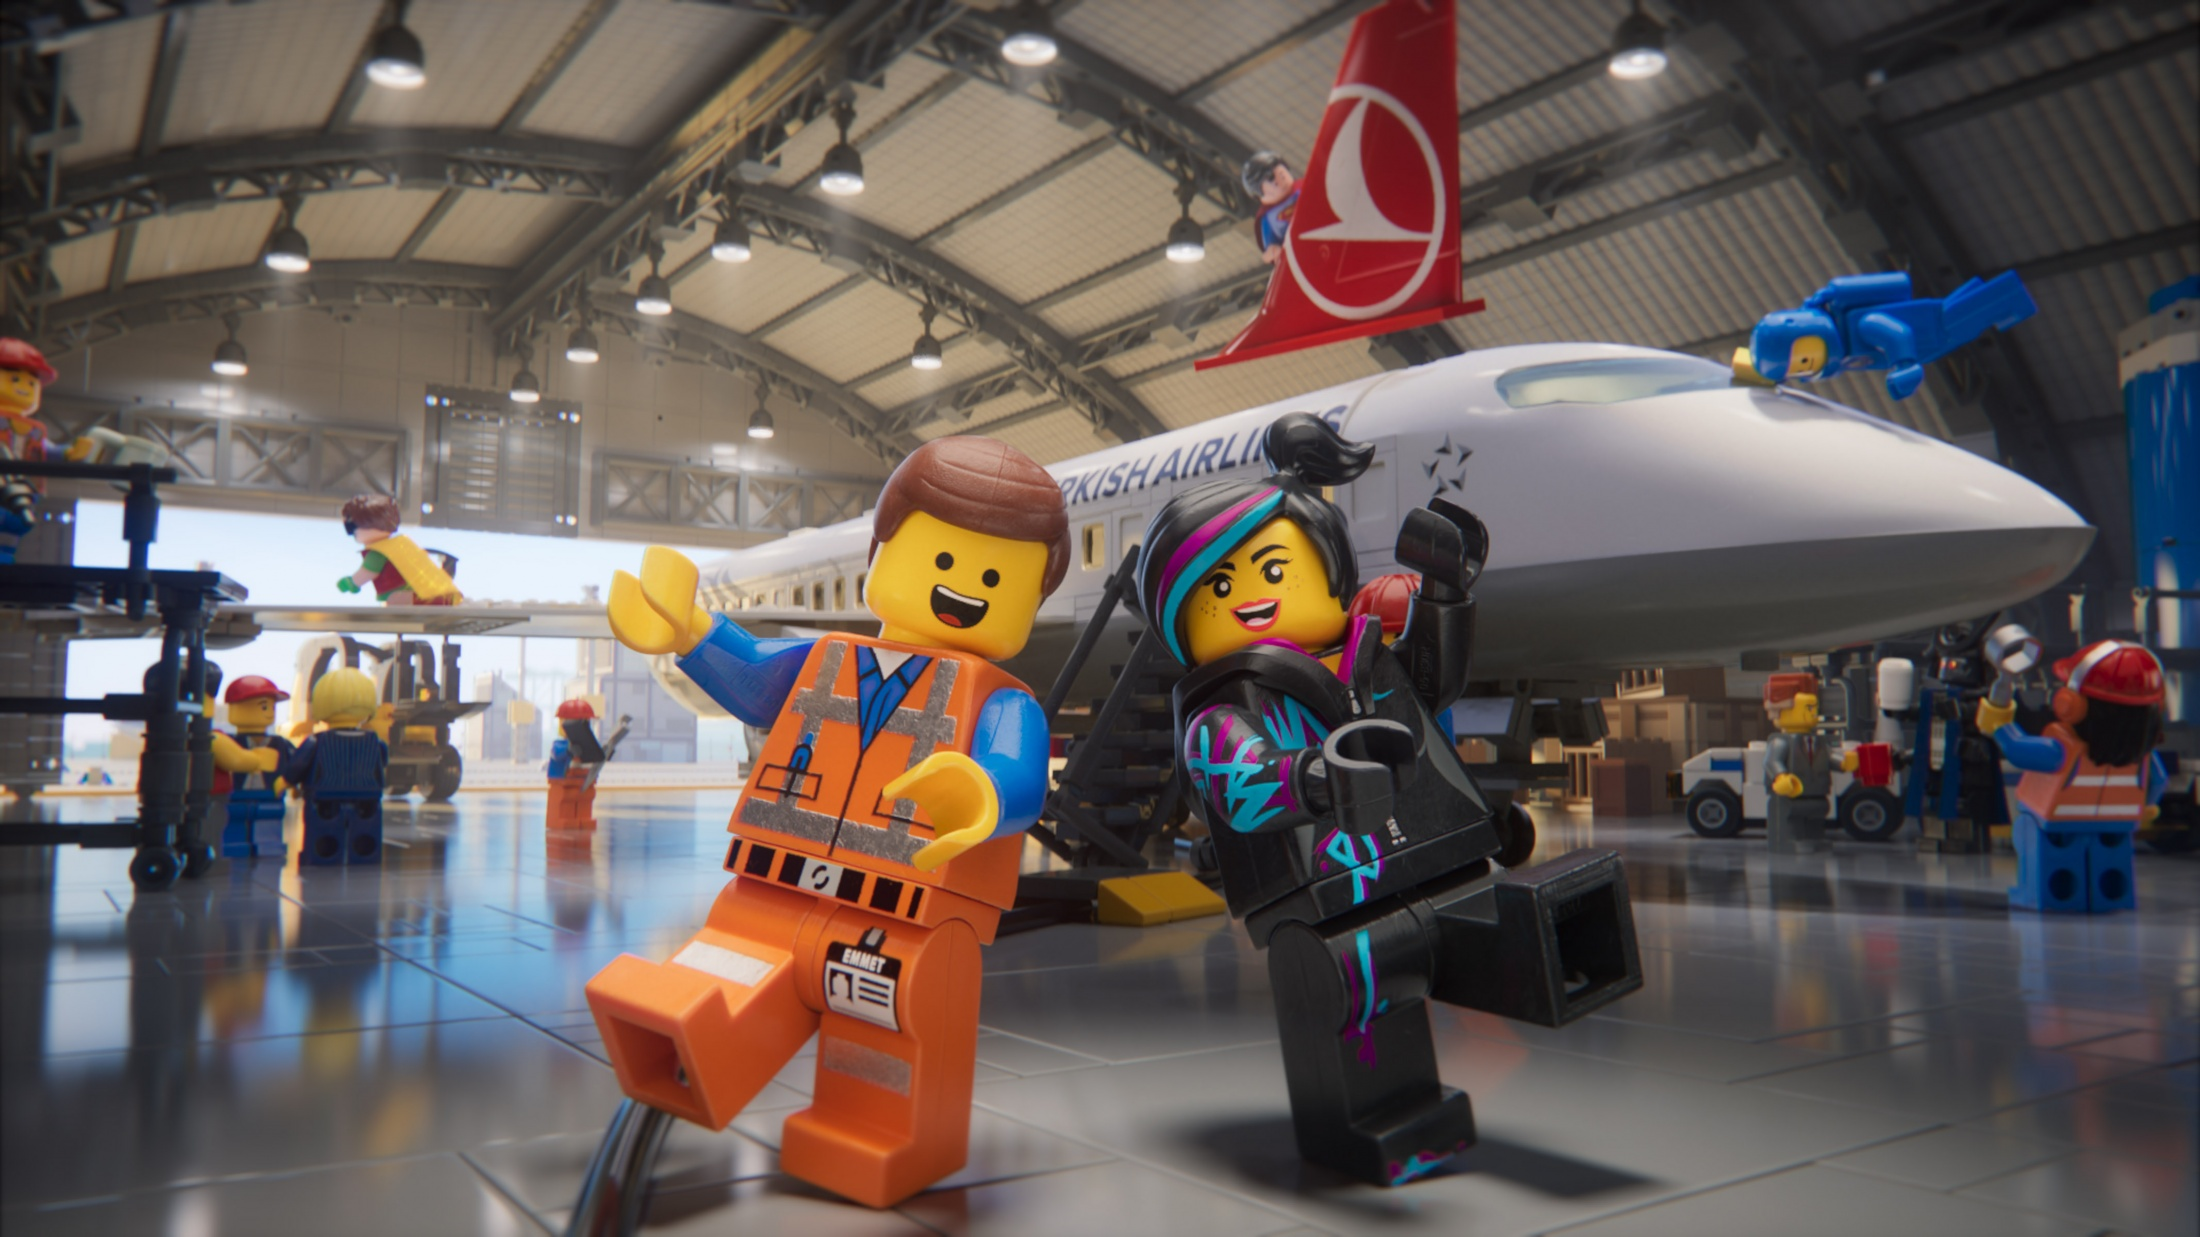 Thumbnail for The LEGO Movie 2/Turkish Airlines Safety Video